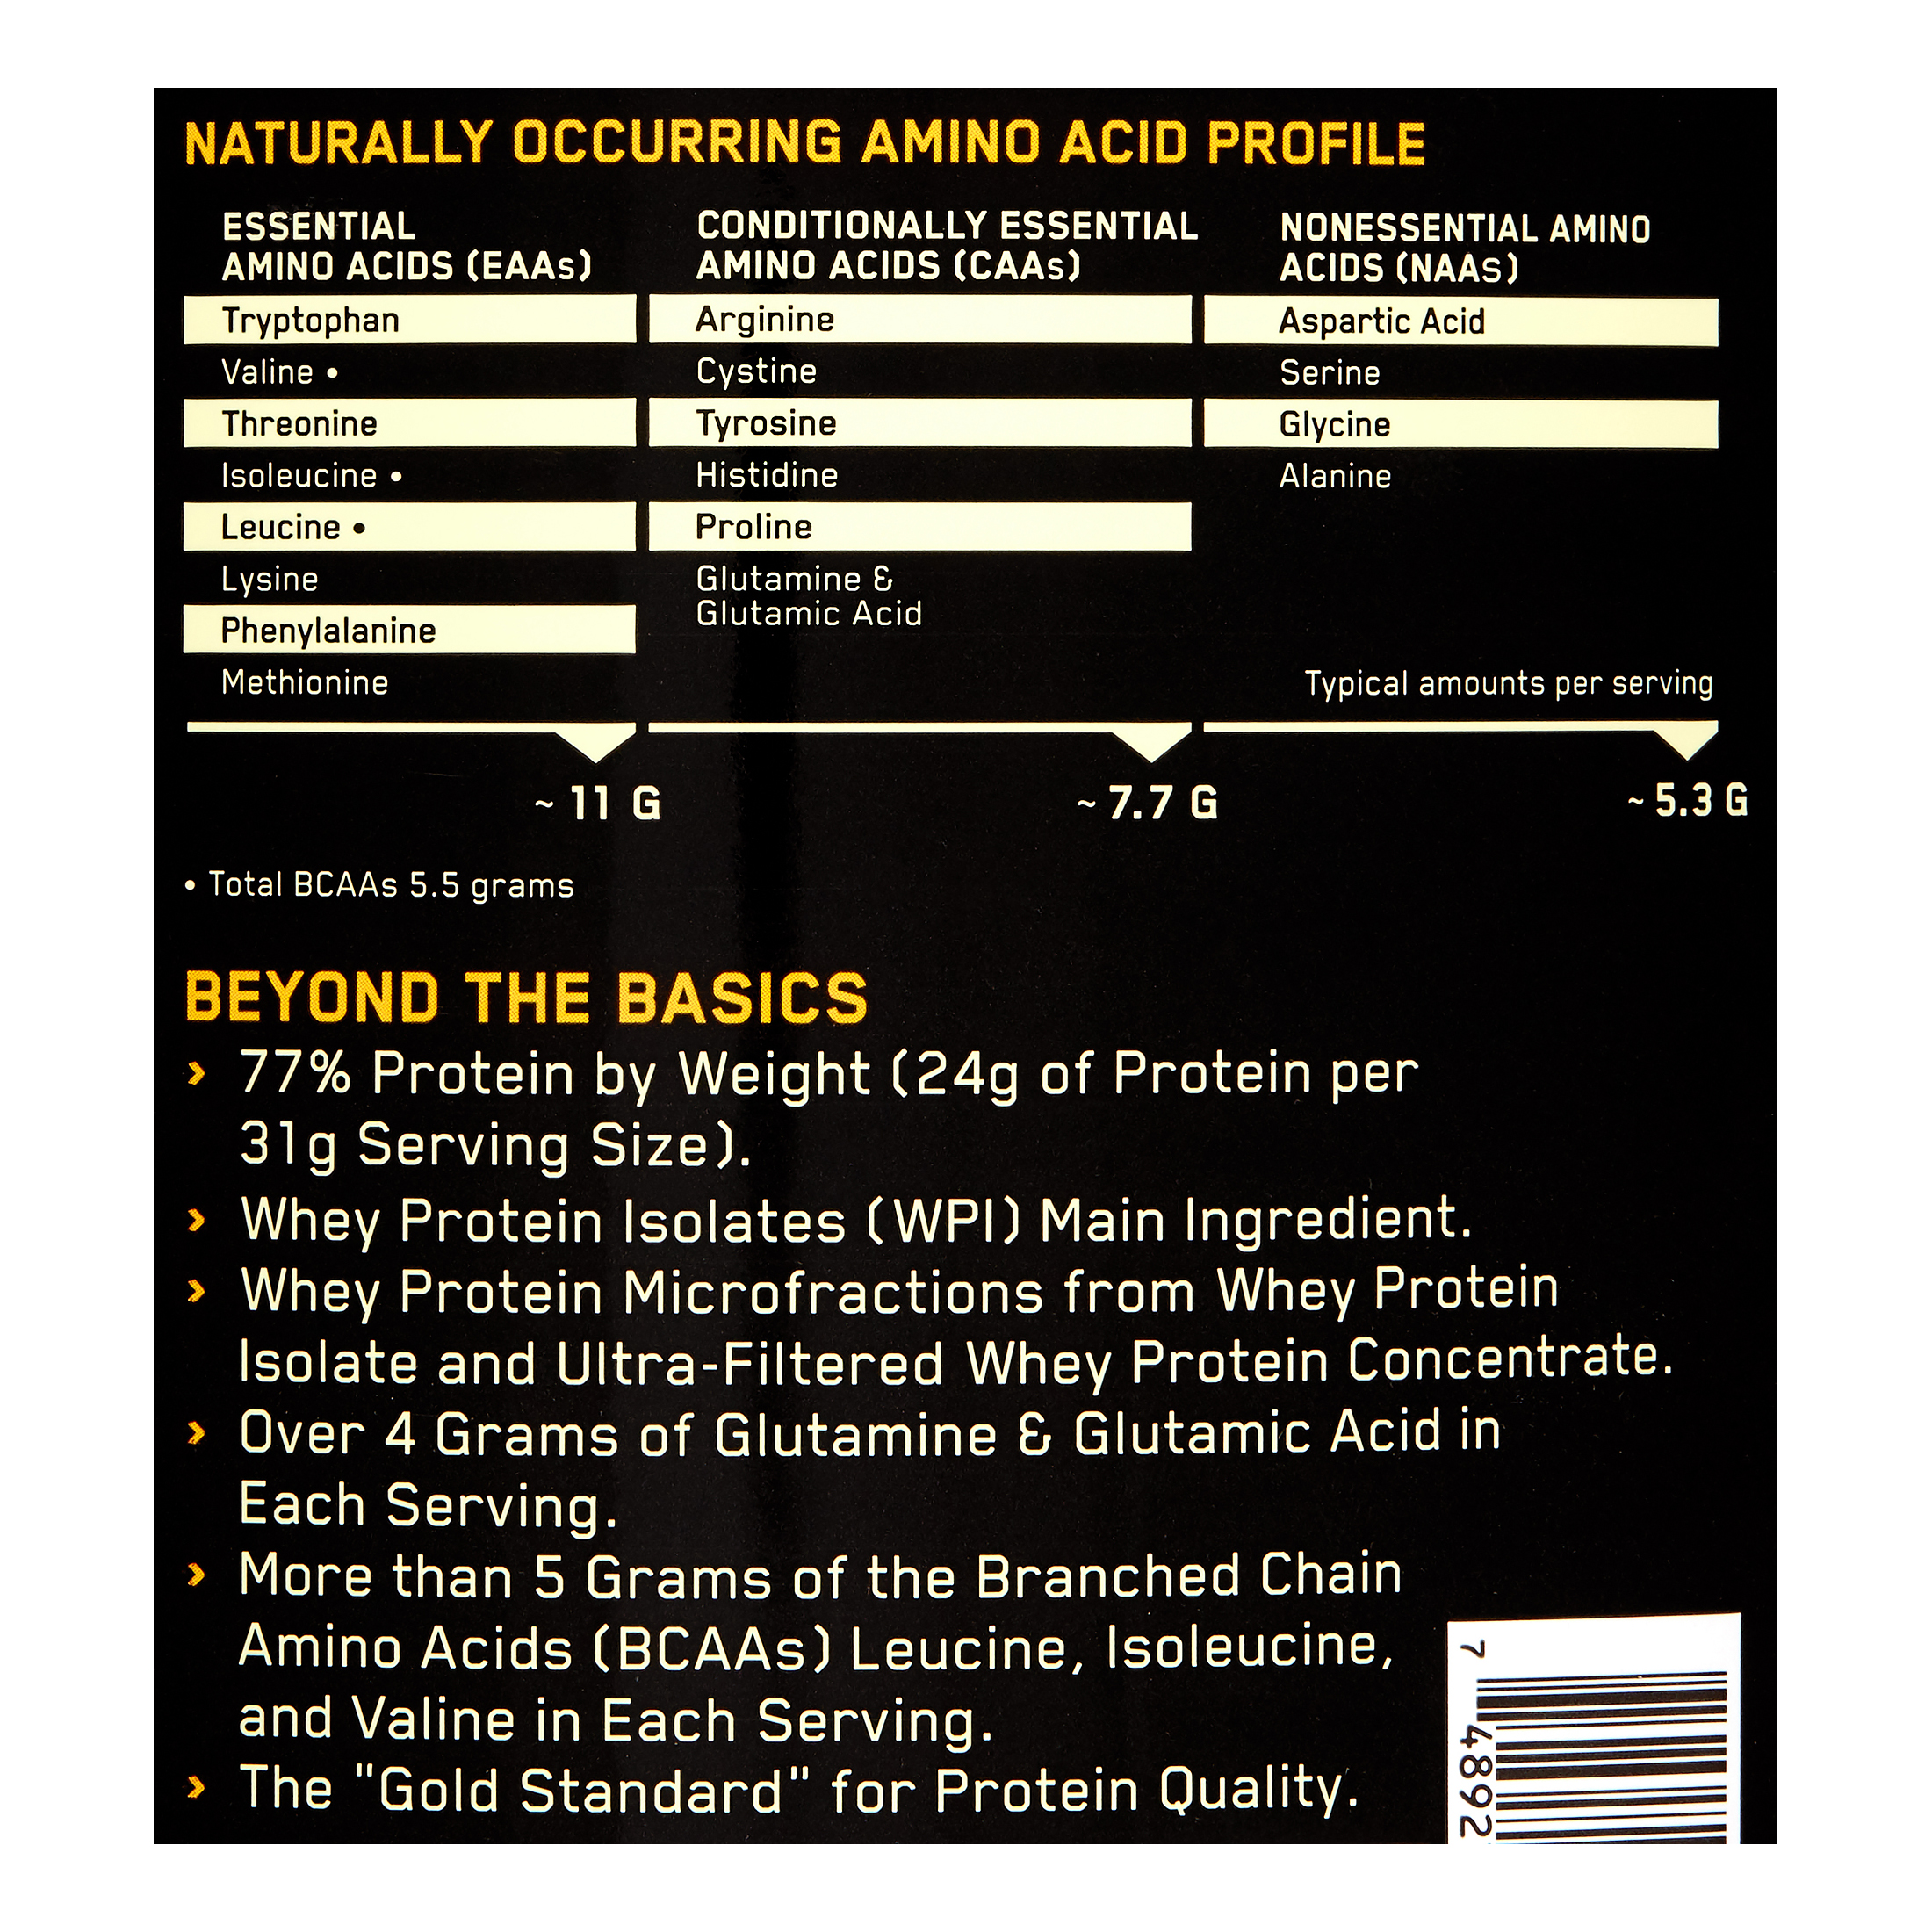 Optimum Nutrition Gold Standard 100% Whey Protein Powder, French Vanilla Creme, 24g Protein, 5 Lb - Walmart.com